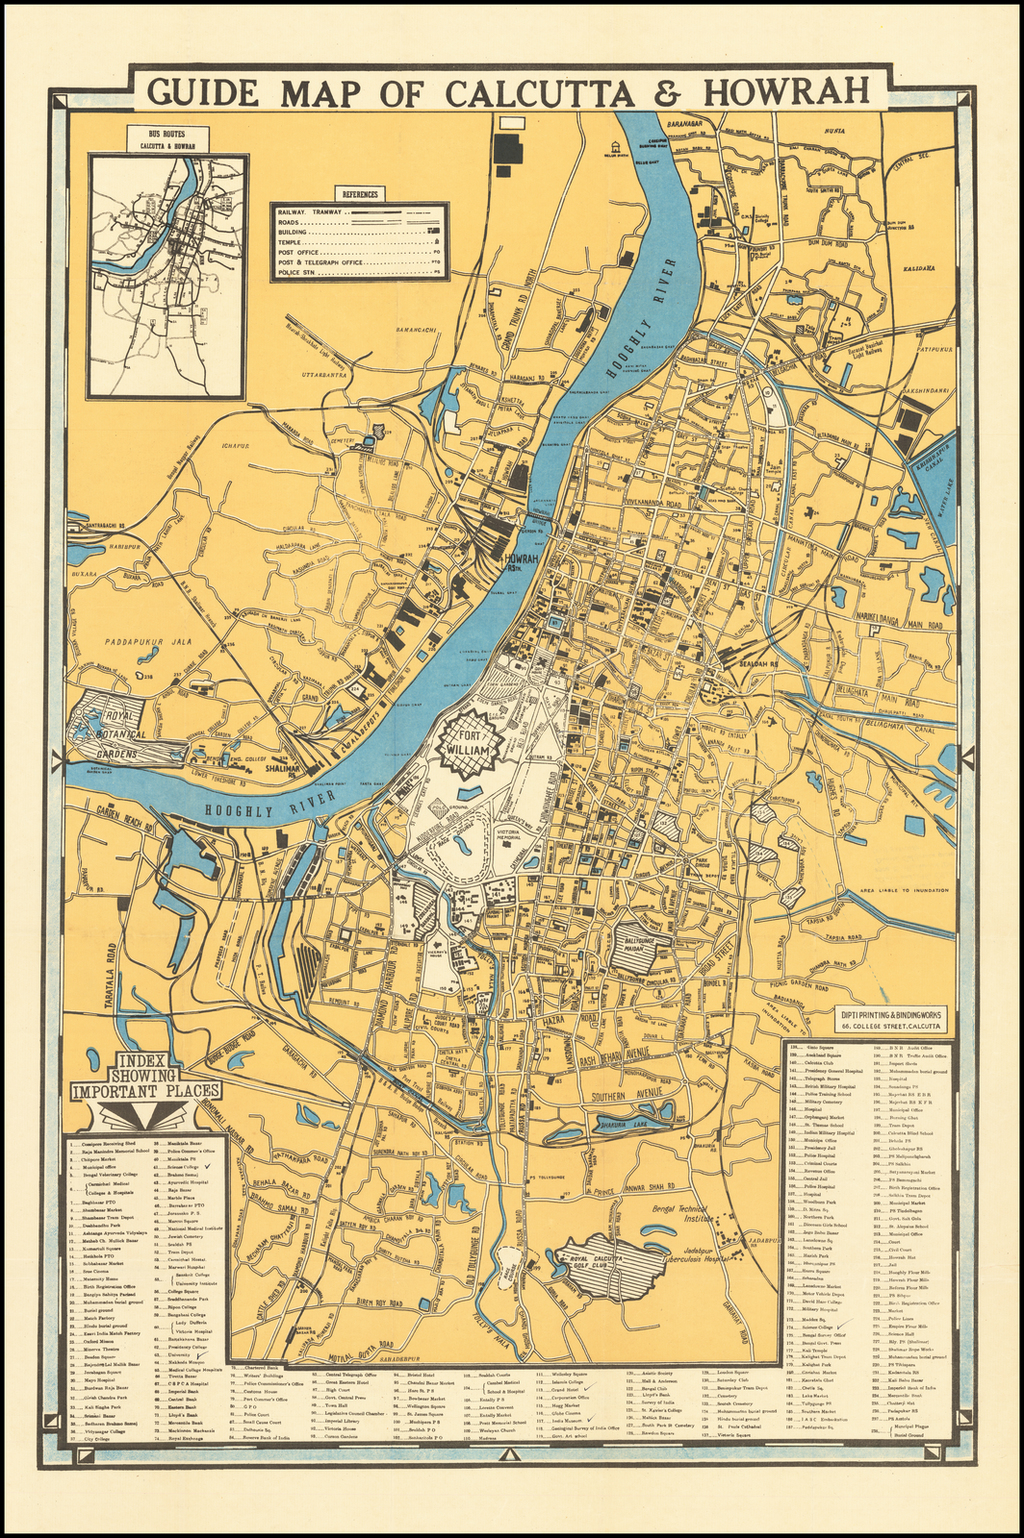 Guide Map of Calcutta & Howrah By